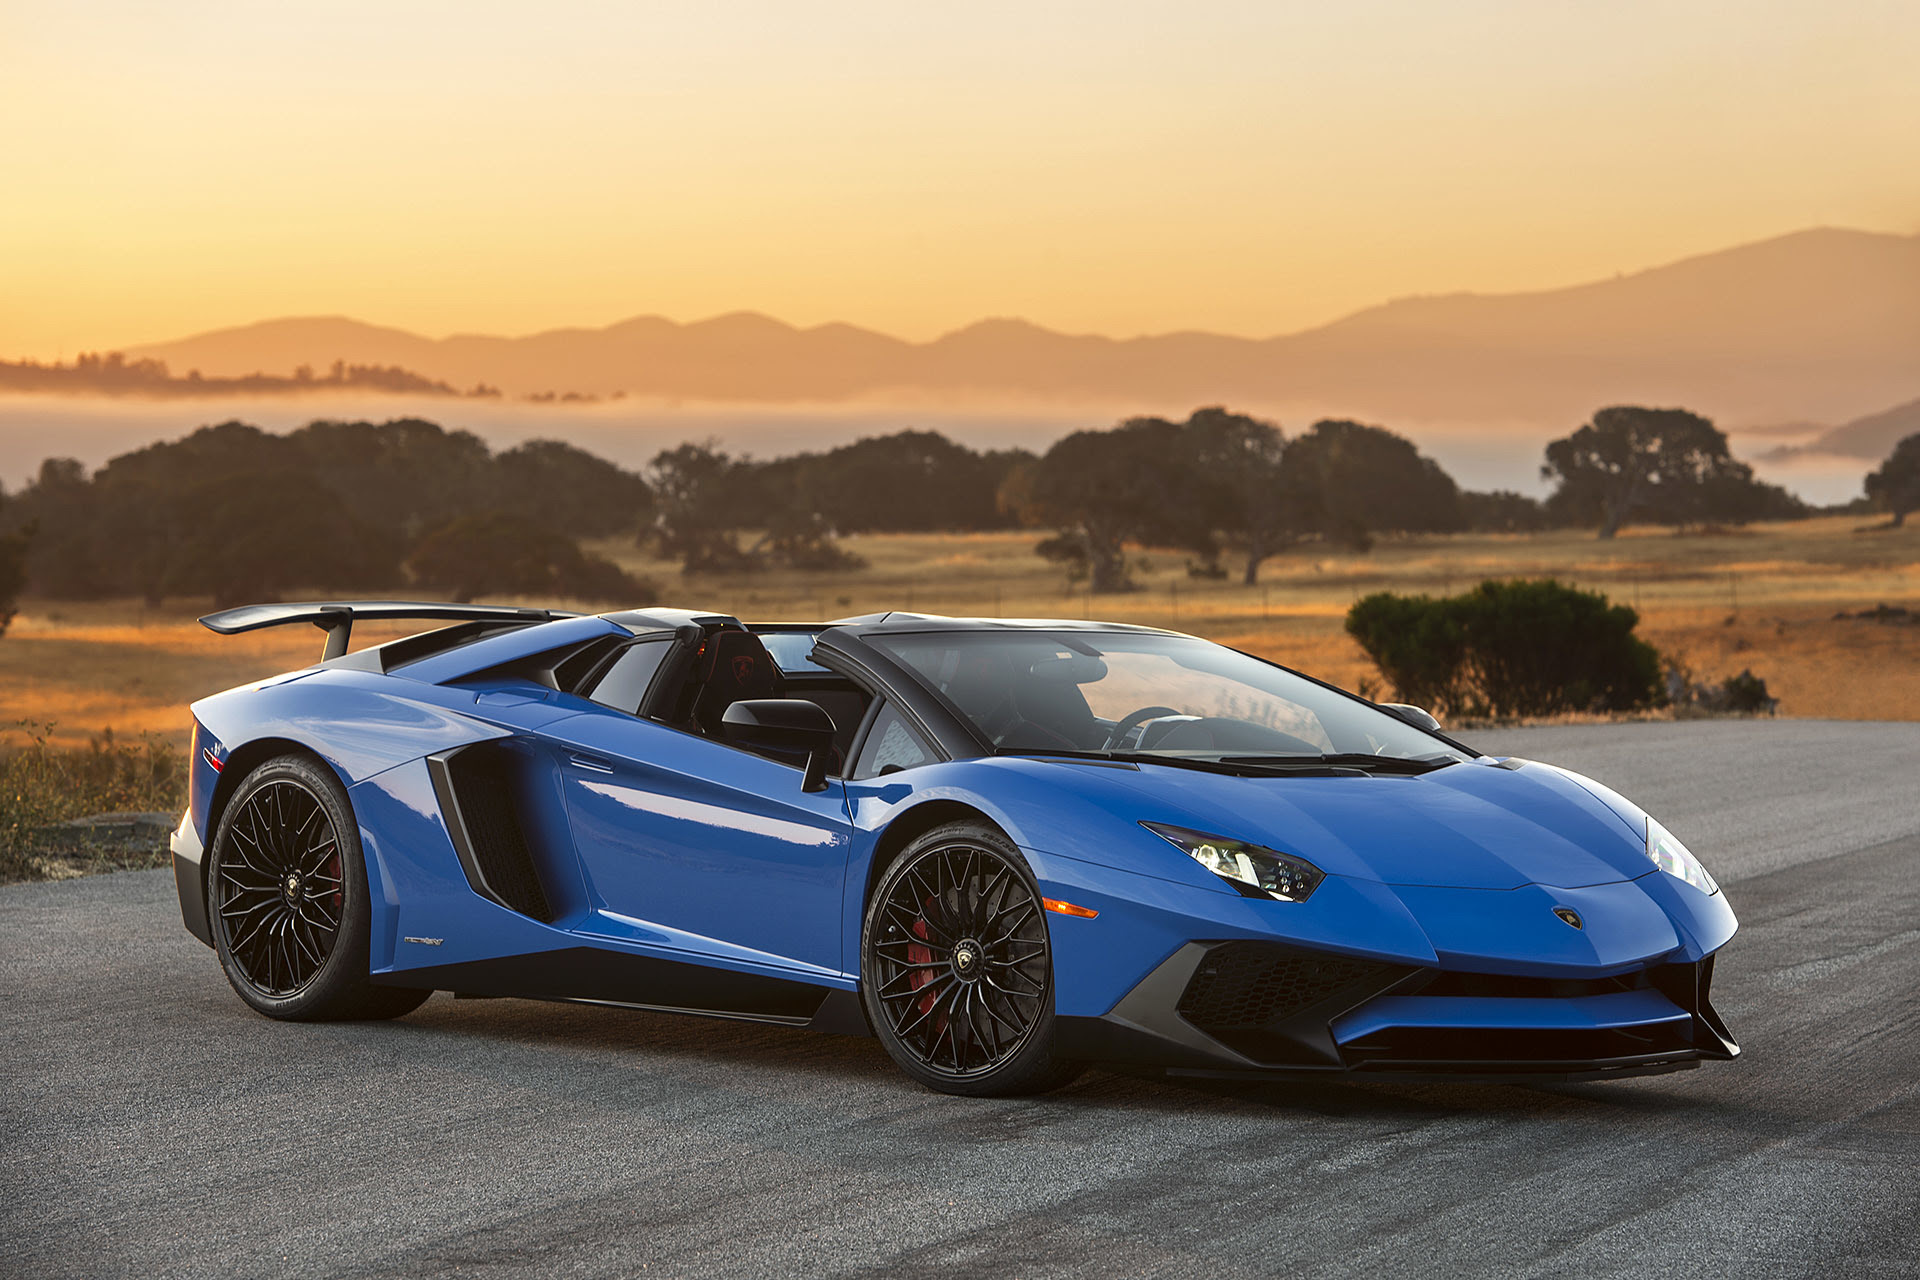 Lamborghini Aventador Lp750 4 Sv Roadster Photo Gallery Autoblog